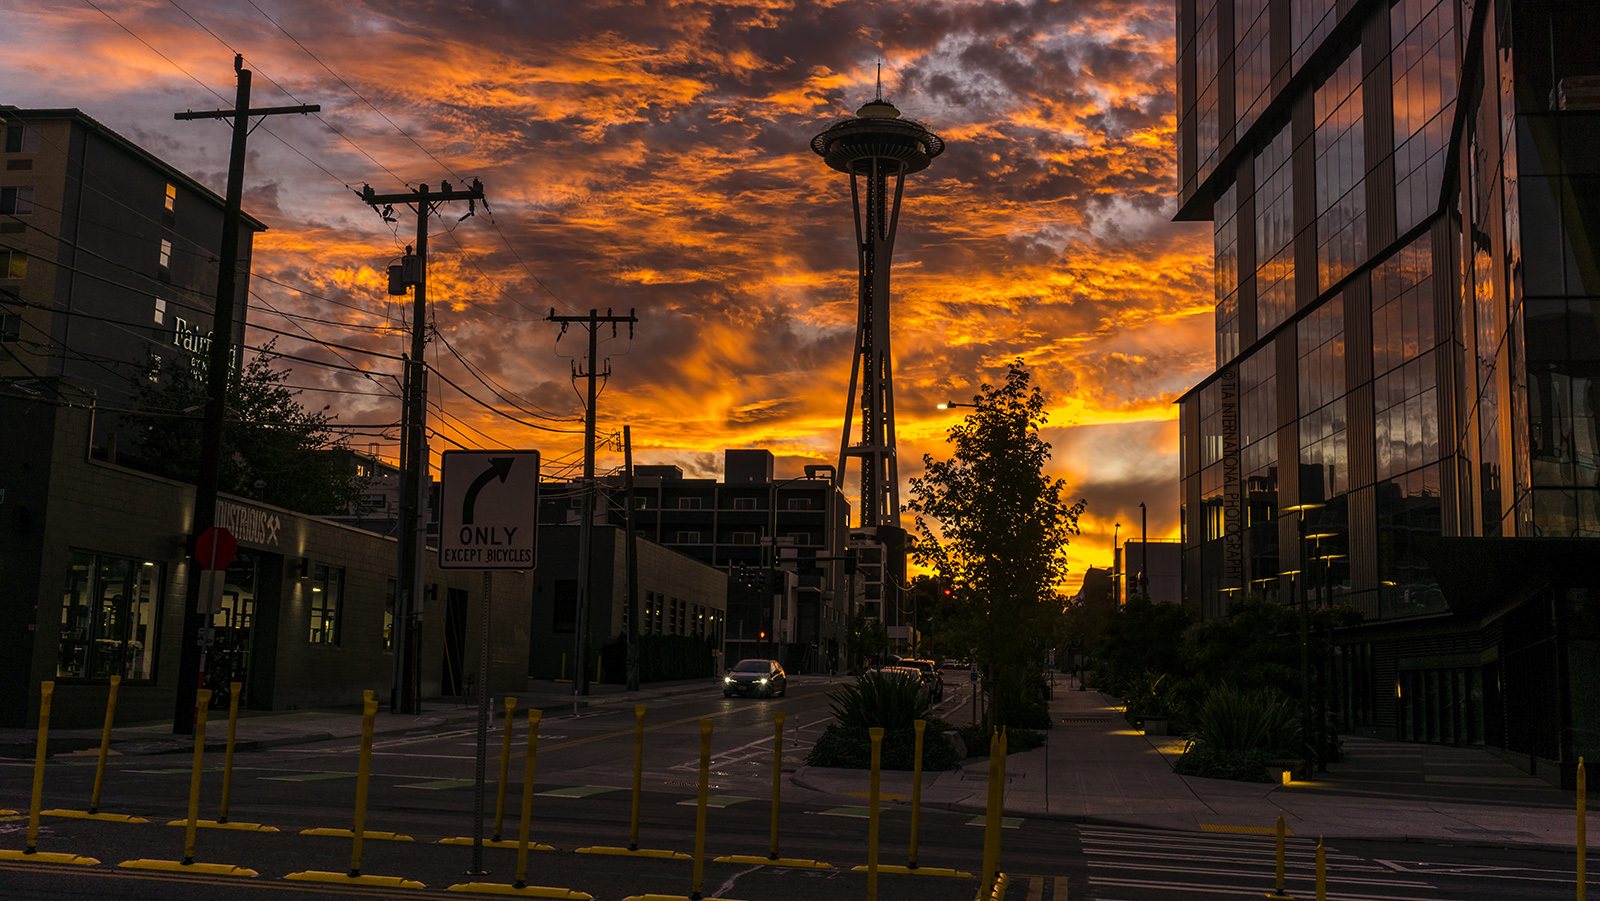 Space Needle at sunset with Apple building campus to the right. / Seattle / September 24, 2021.